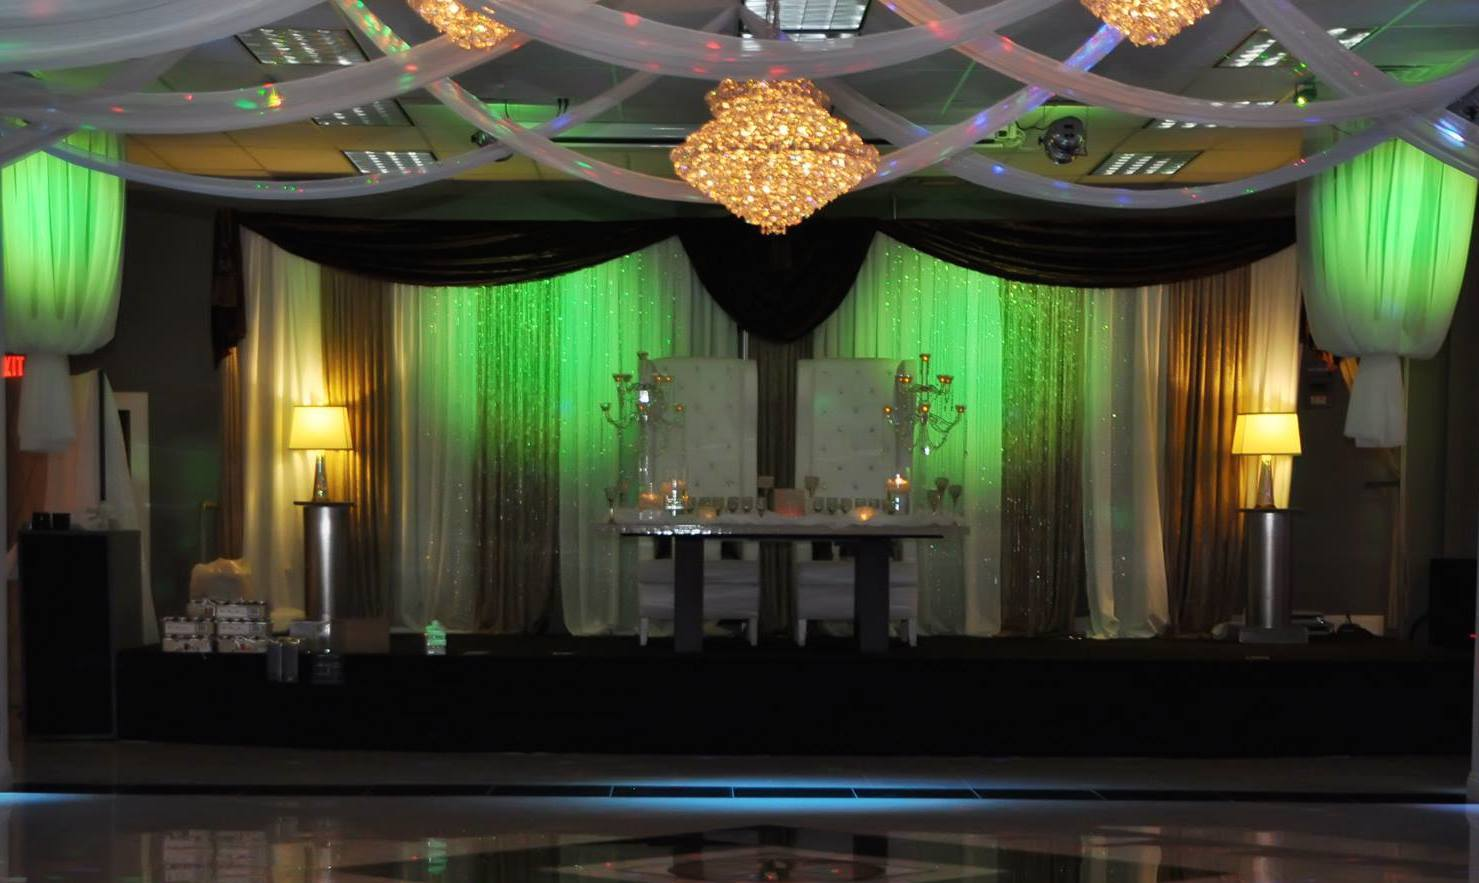 Banquet Halls In Las Vegas For Rent : Spotlight chandelier banquet hall las vegas wedding